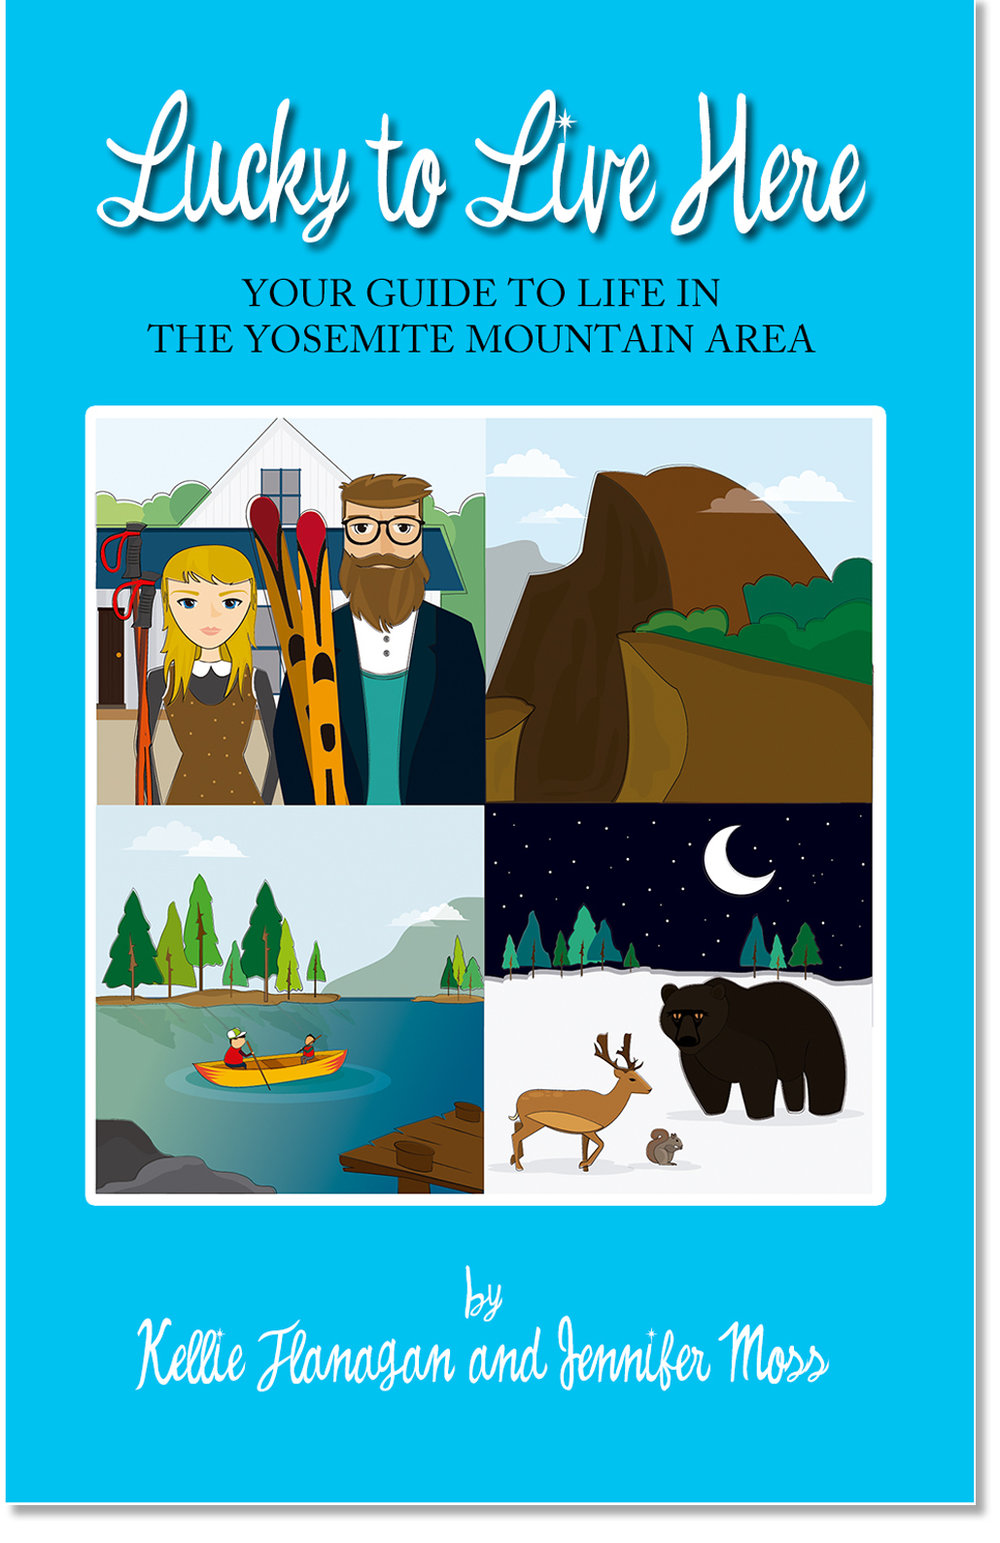 Your Guide to Life in the Yosemite Mountain Area The one and only guide to moving to and living in the Yosemite mountain area. It provides all the information you need on finding a home, careers and networking, schools, animals, wildlife, and social events.